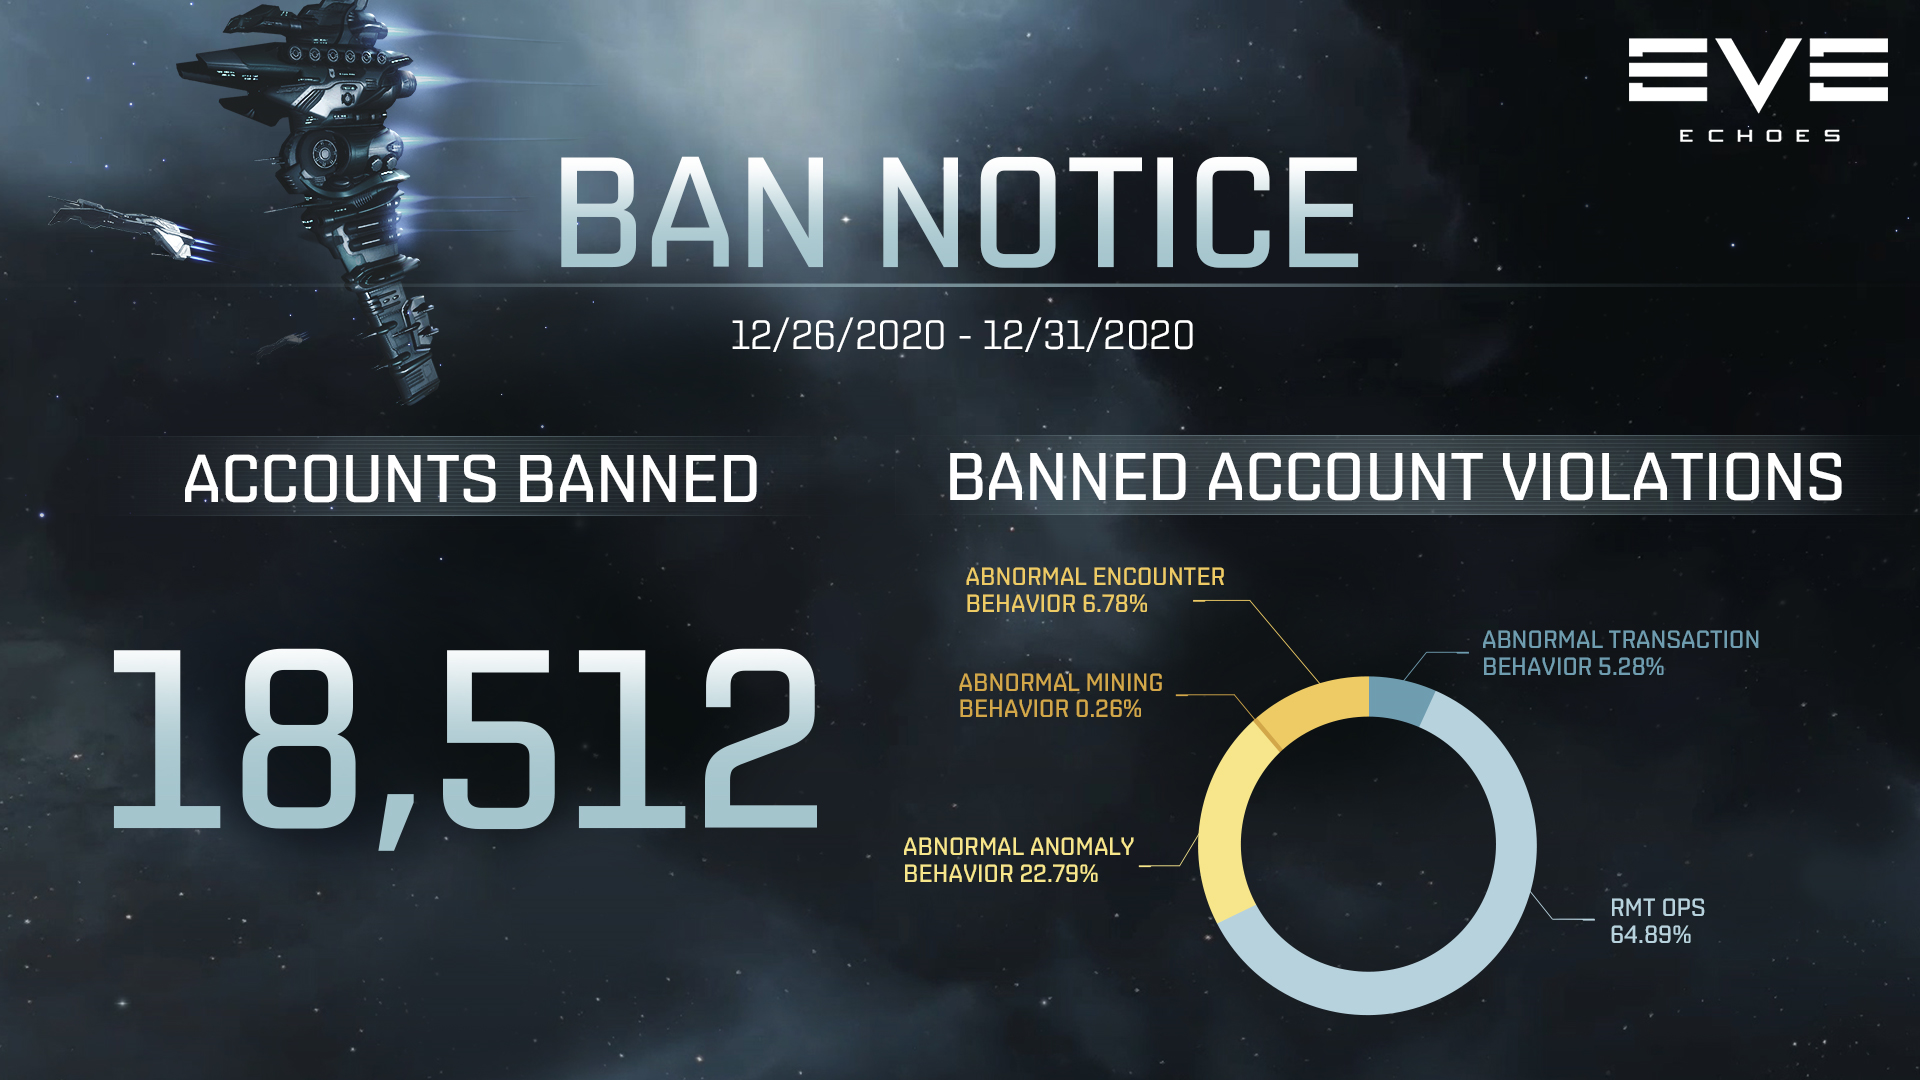 Ban Notice for 12/26-12/31